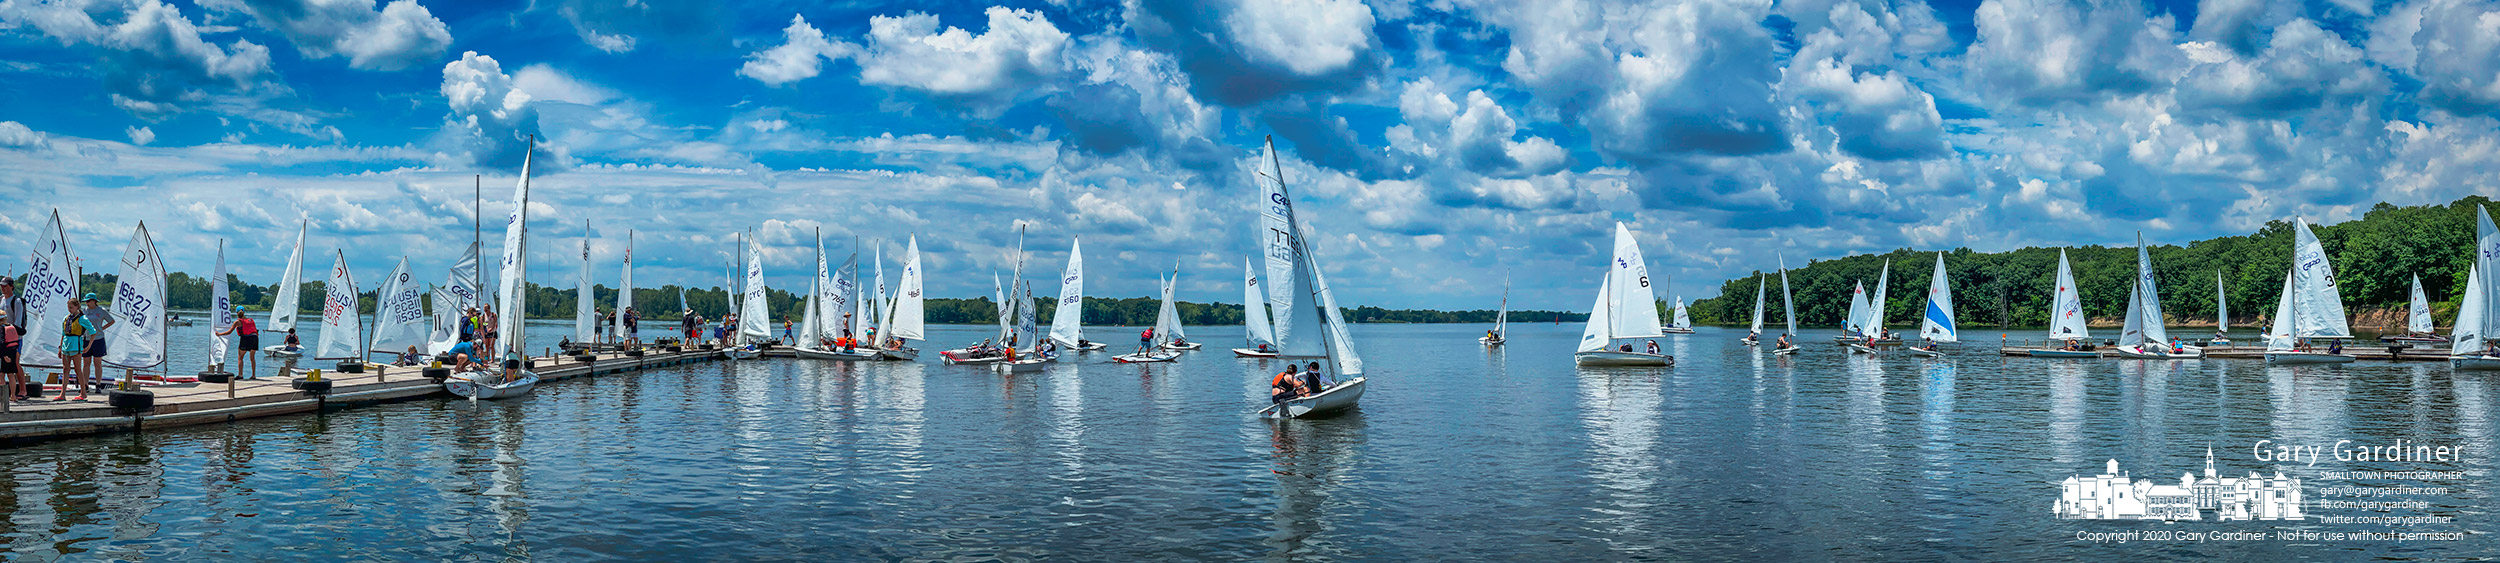 Three fleets of sailors cast off from the docks at the Hoover Sail Club for afternoon completion in a regional regatta. My Final Photo for June 12, 2021.